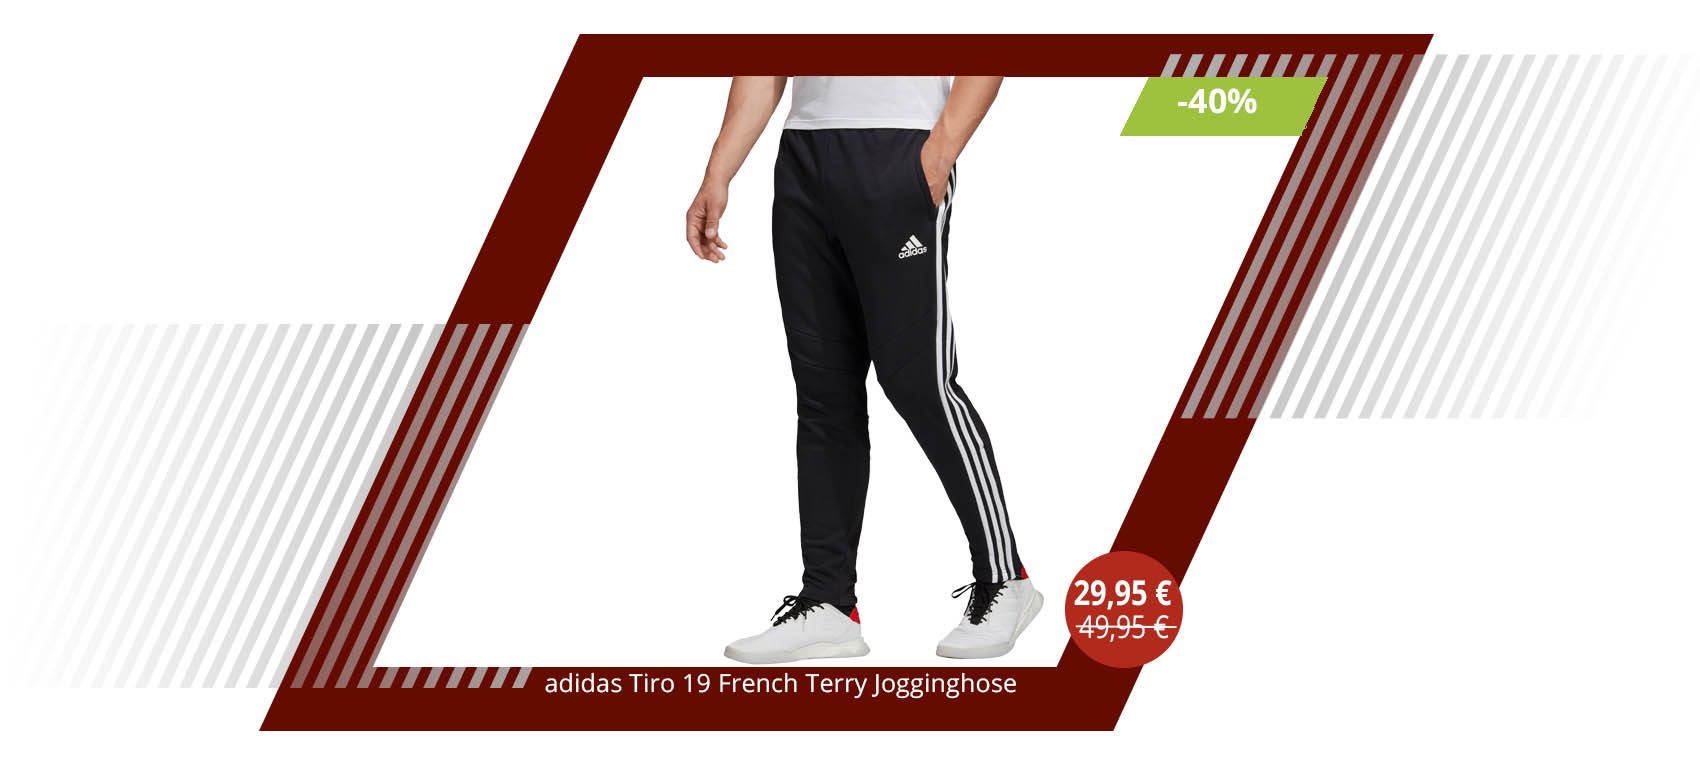 adidas Tiro 19 French Terry Jogginghose